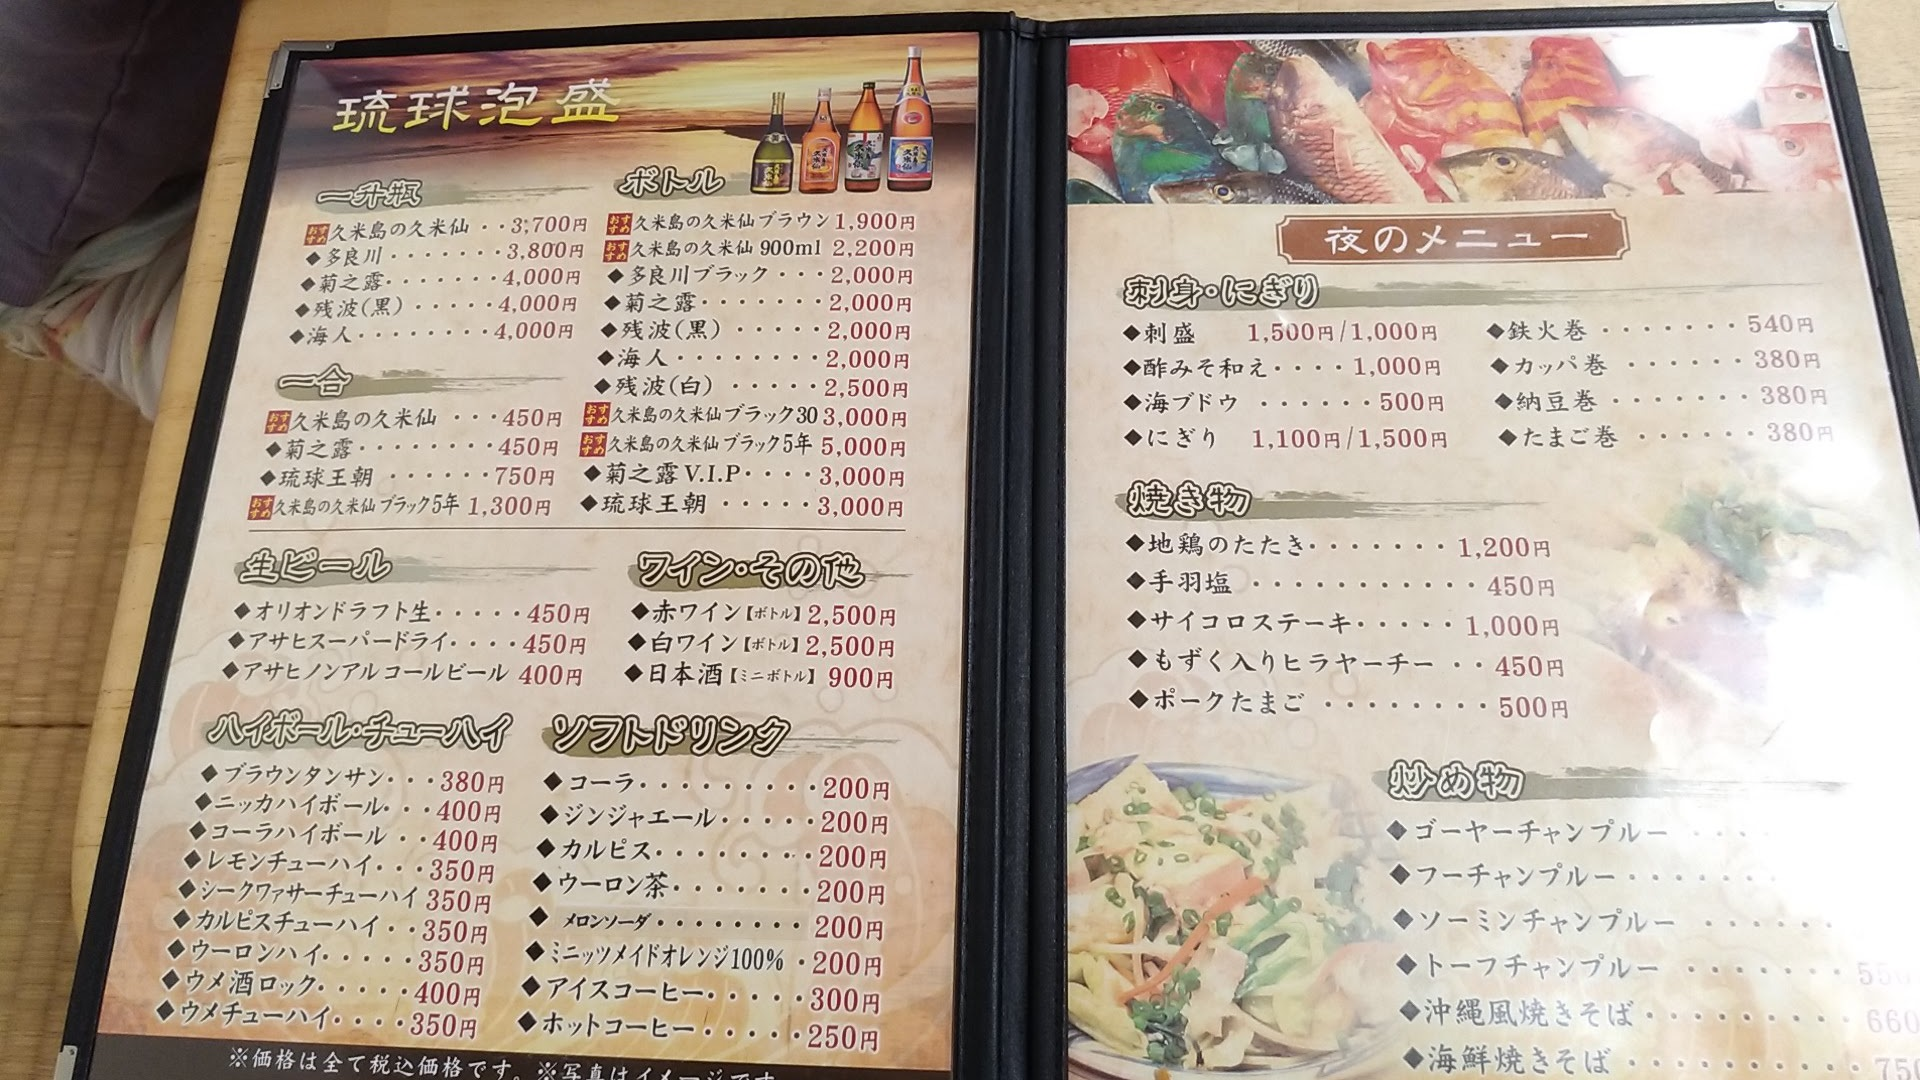 the menu of Oujima Seafood Restaurant 2